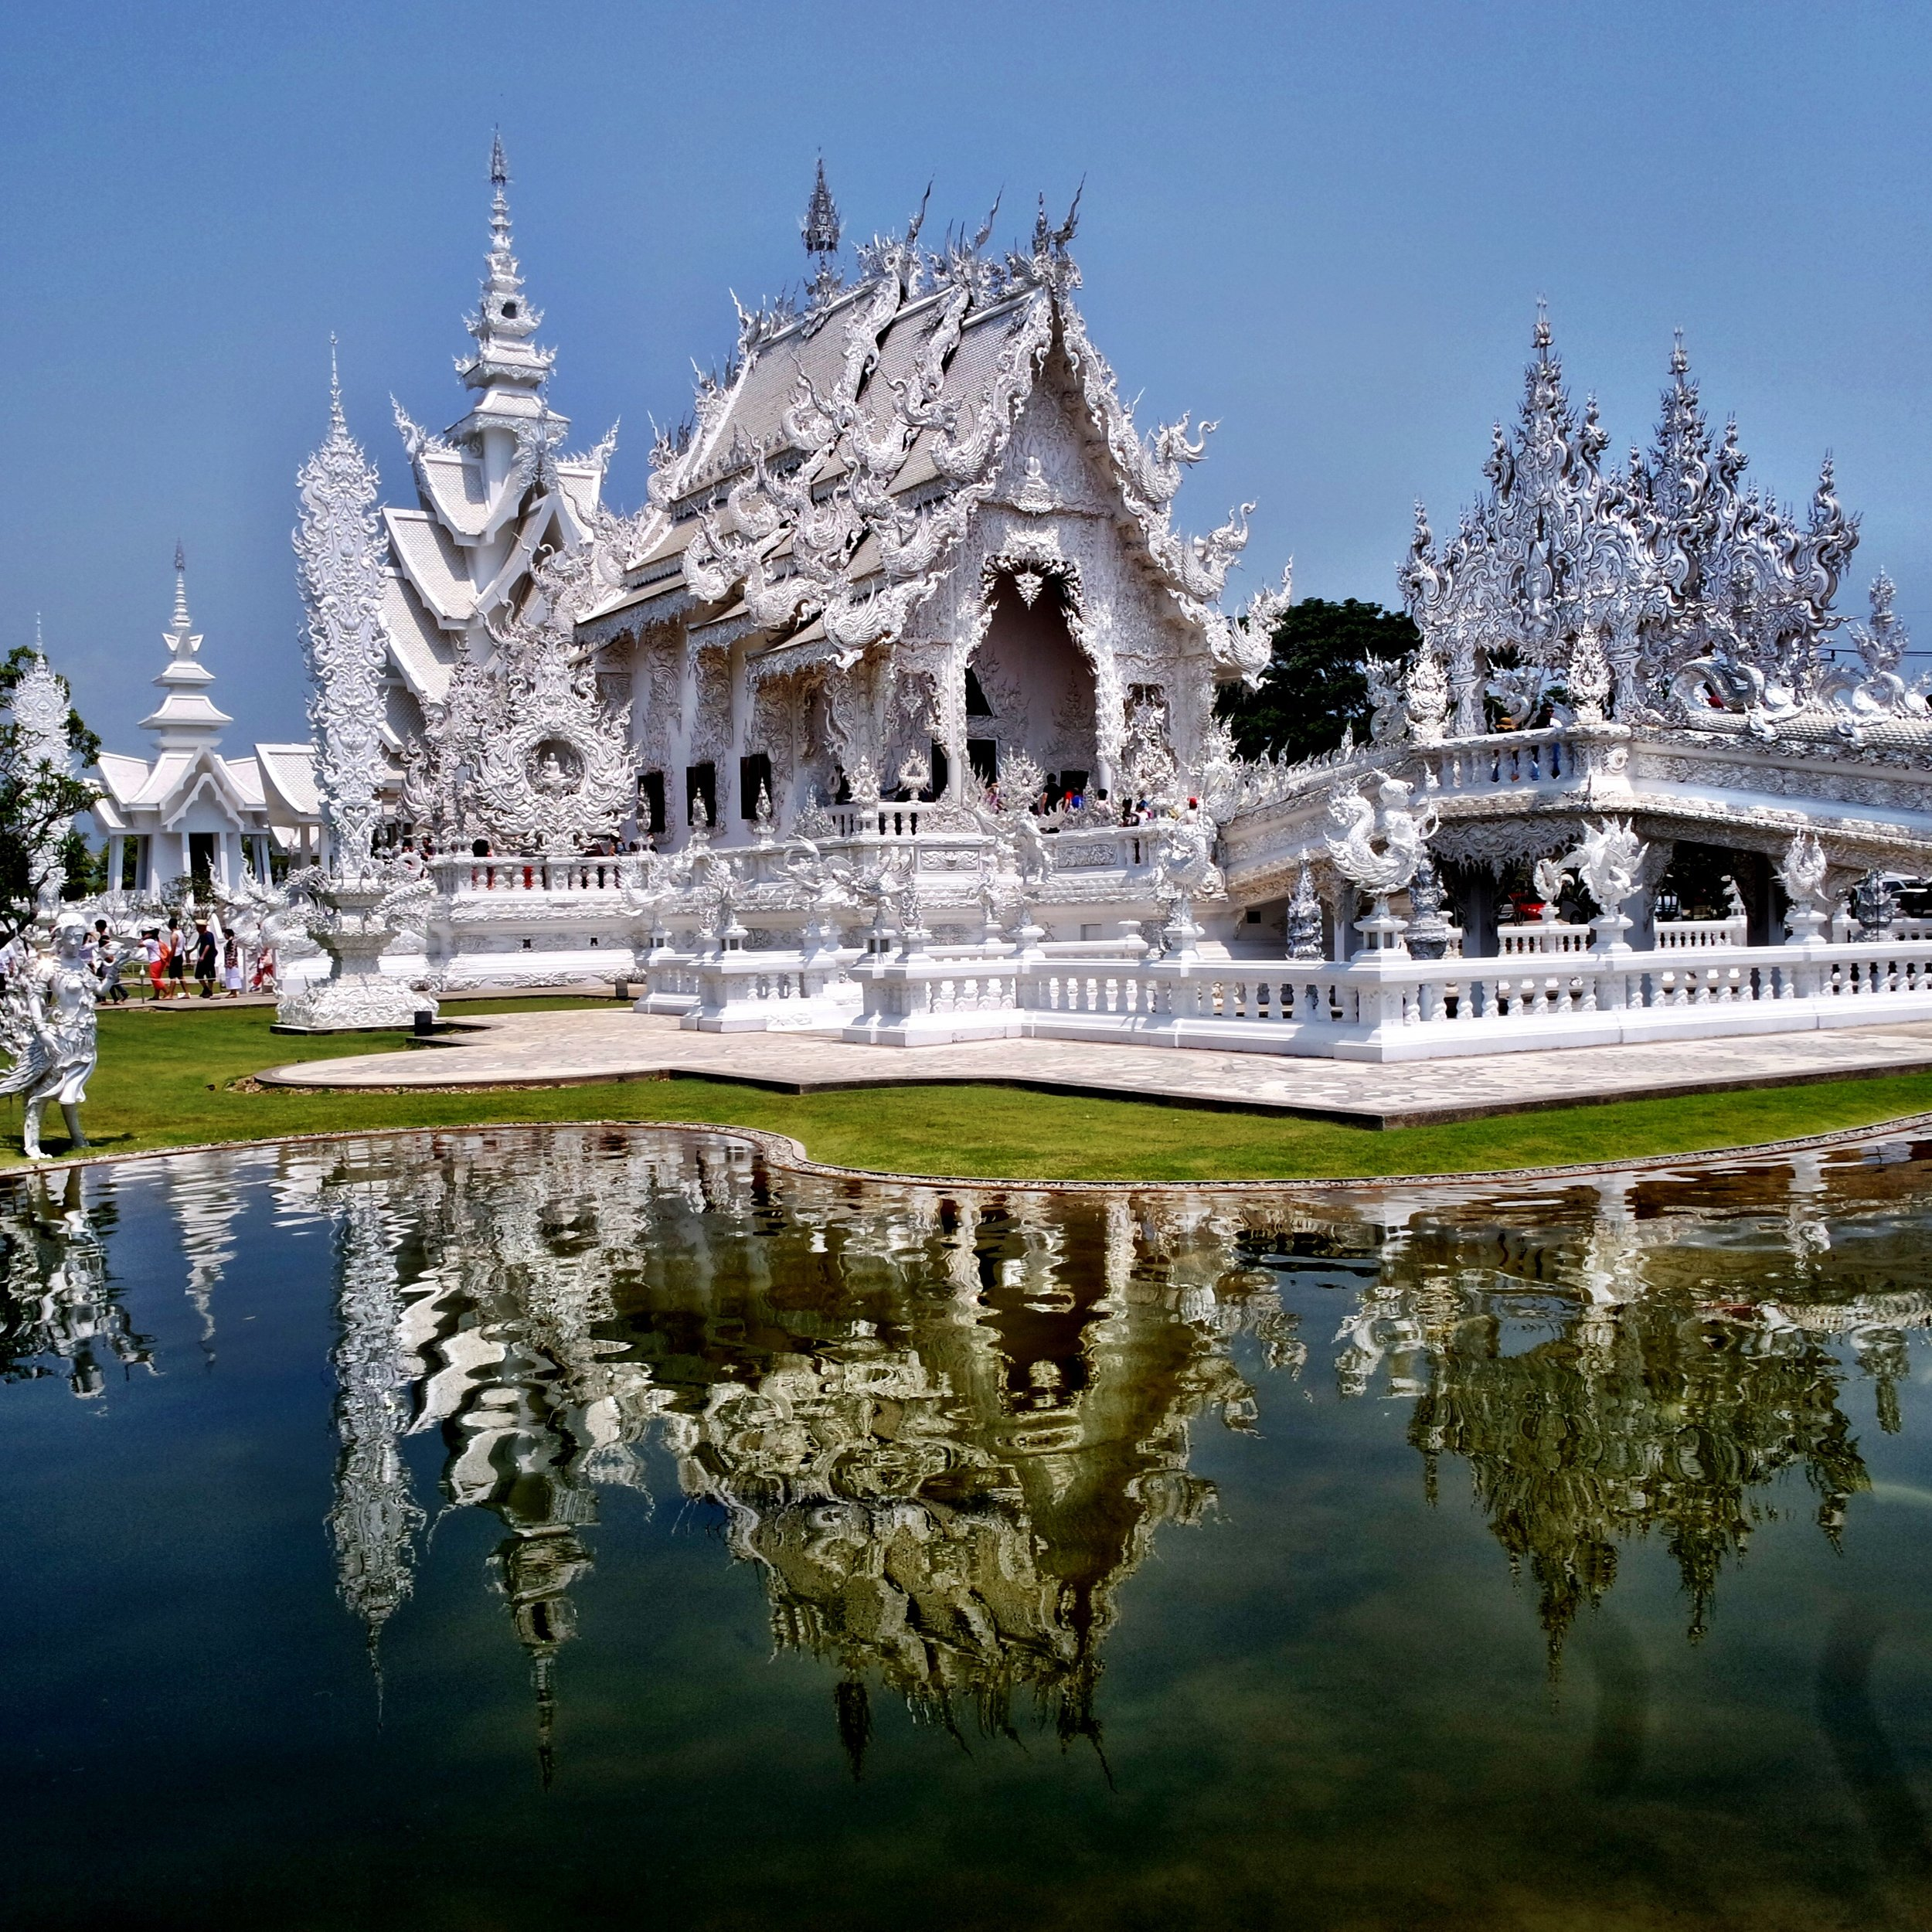 The White Temple is the most popular attraction in Chiang Rai, Thailand